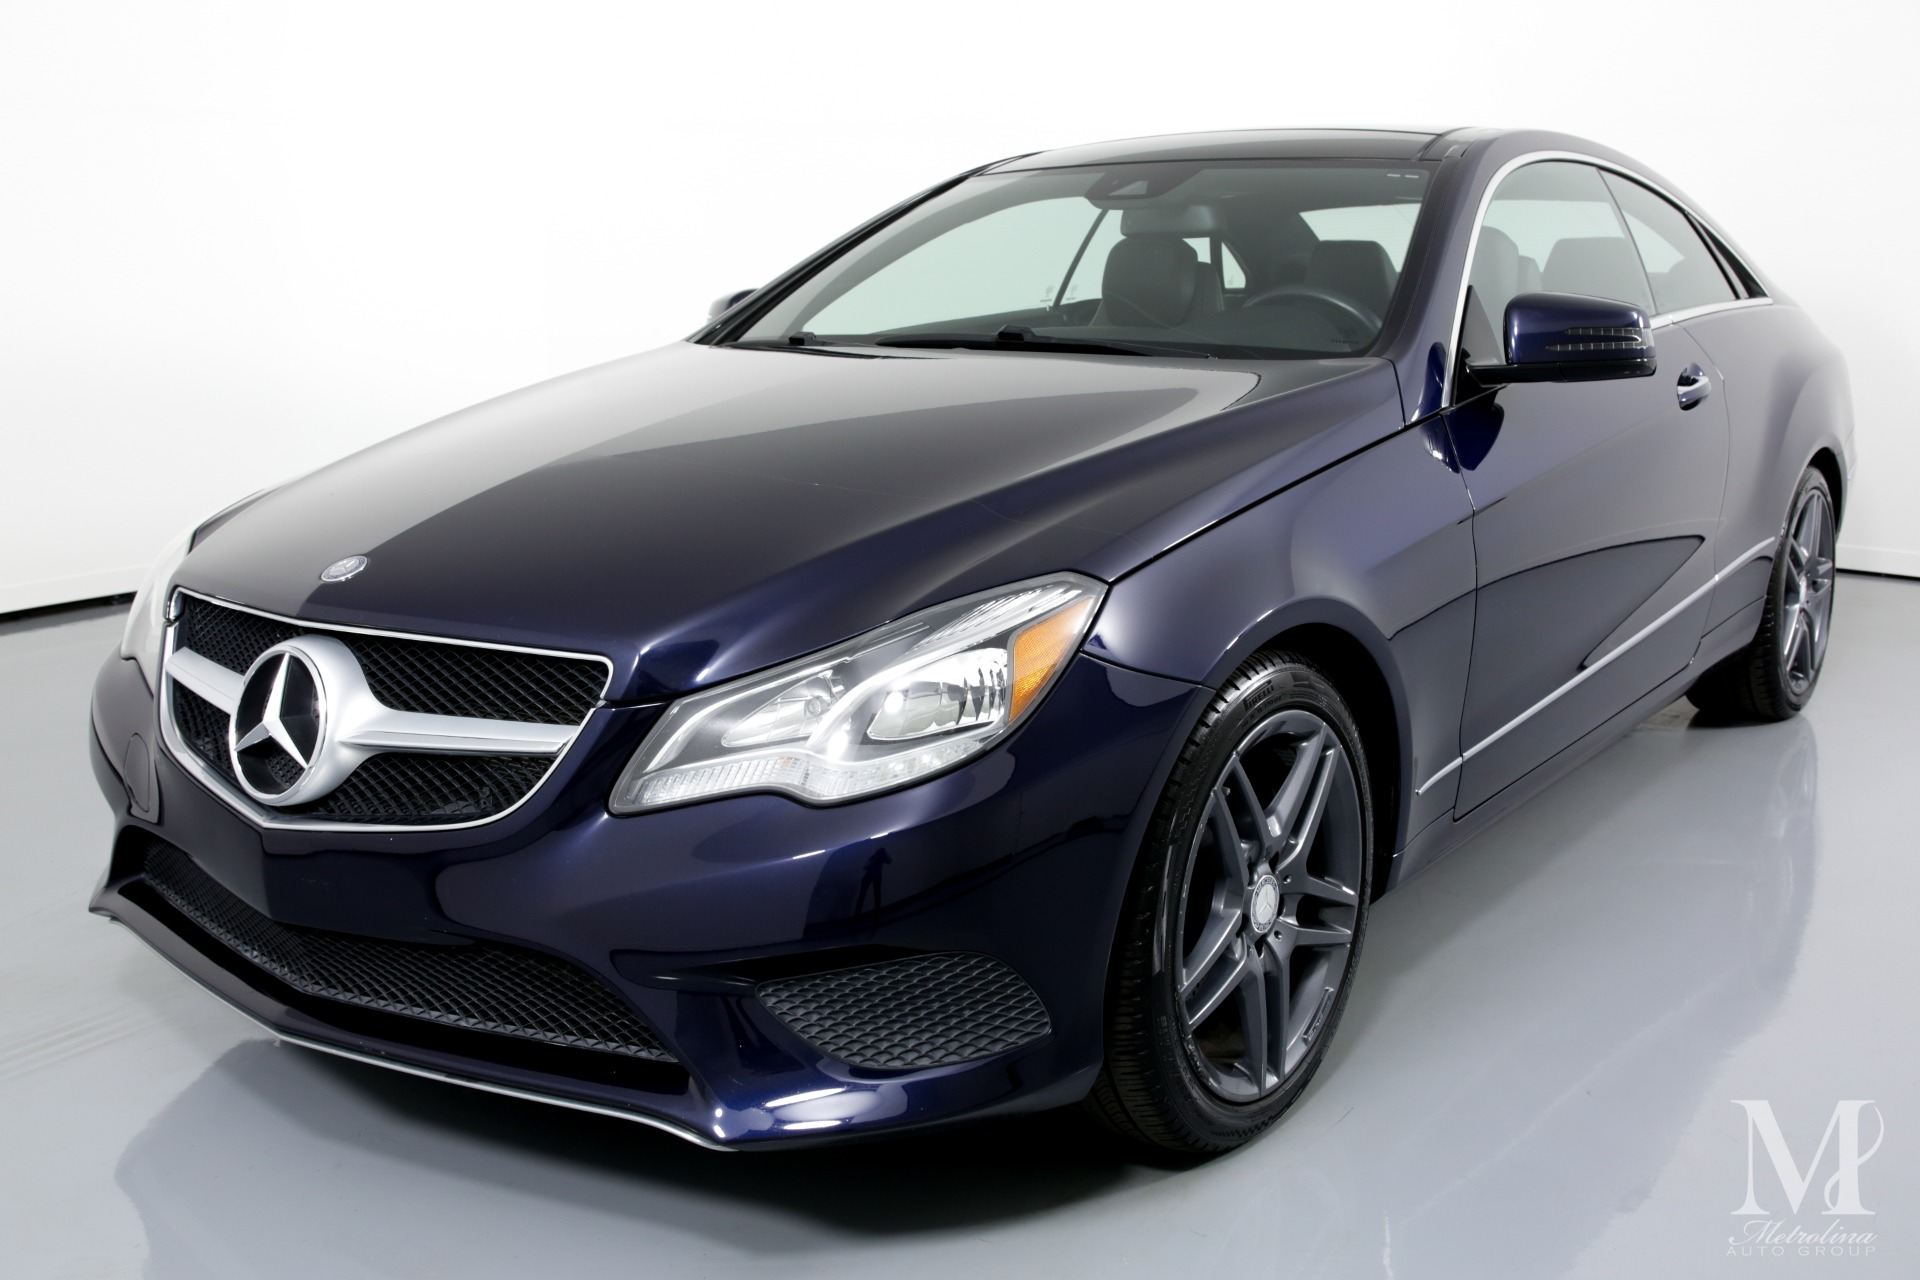 Used 2014 Mercedes-Benz E-Class E 350 4MATIC AWD 2dr Coupe for sale $21,750 at Metrolina Auto Group in Charlotte NC 28217 - 4